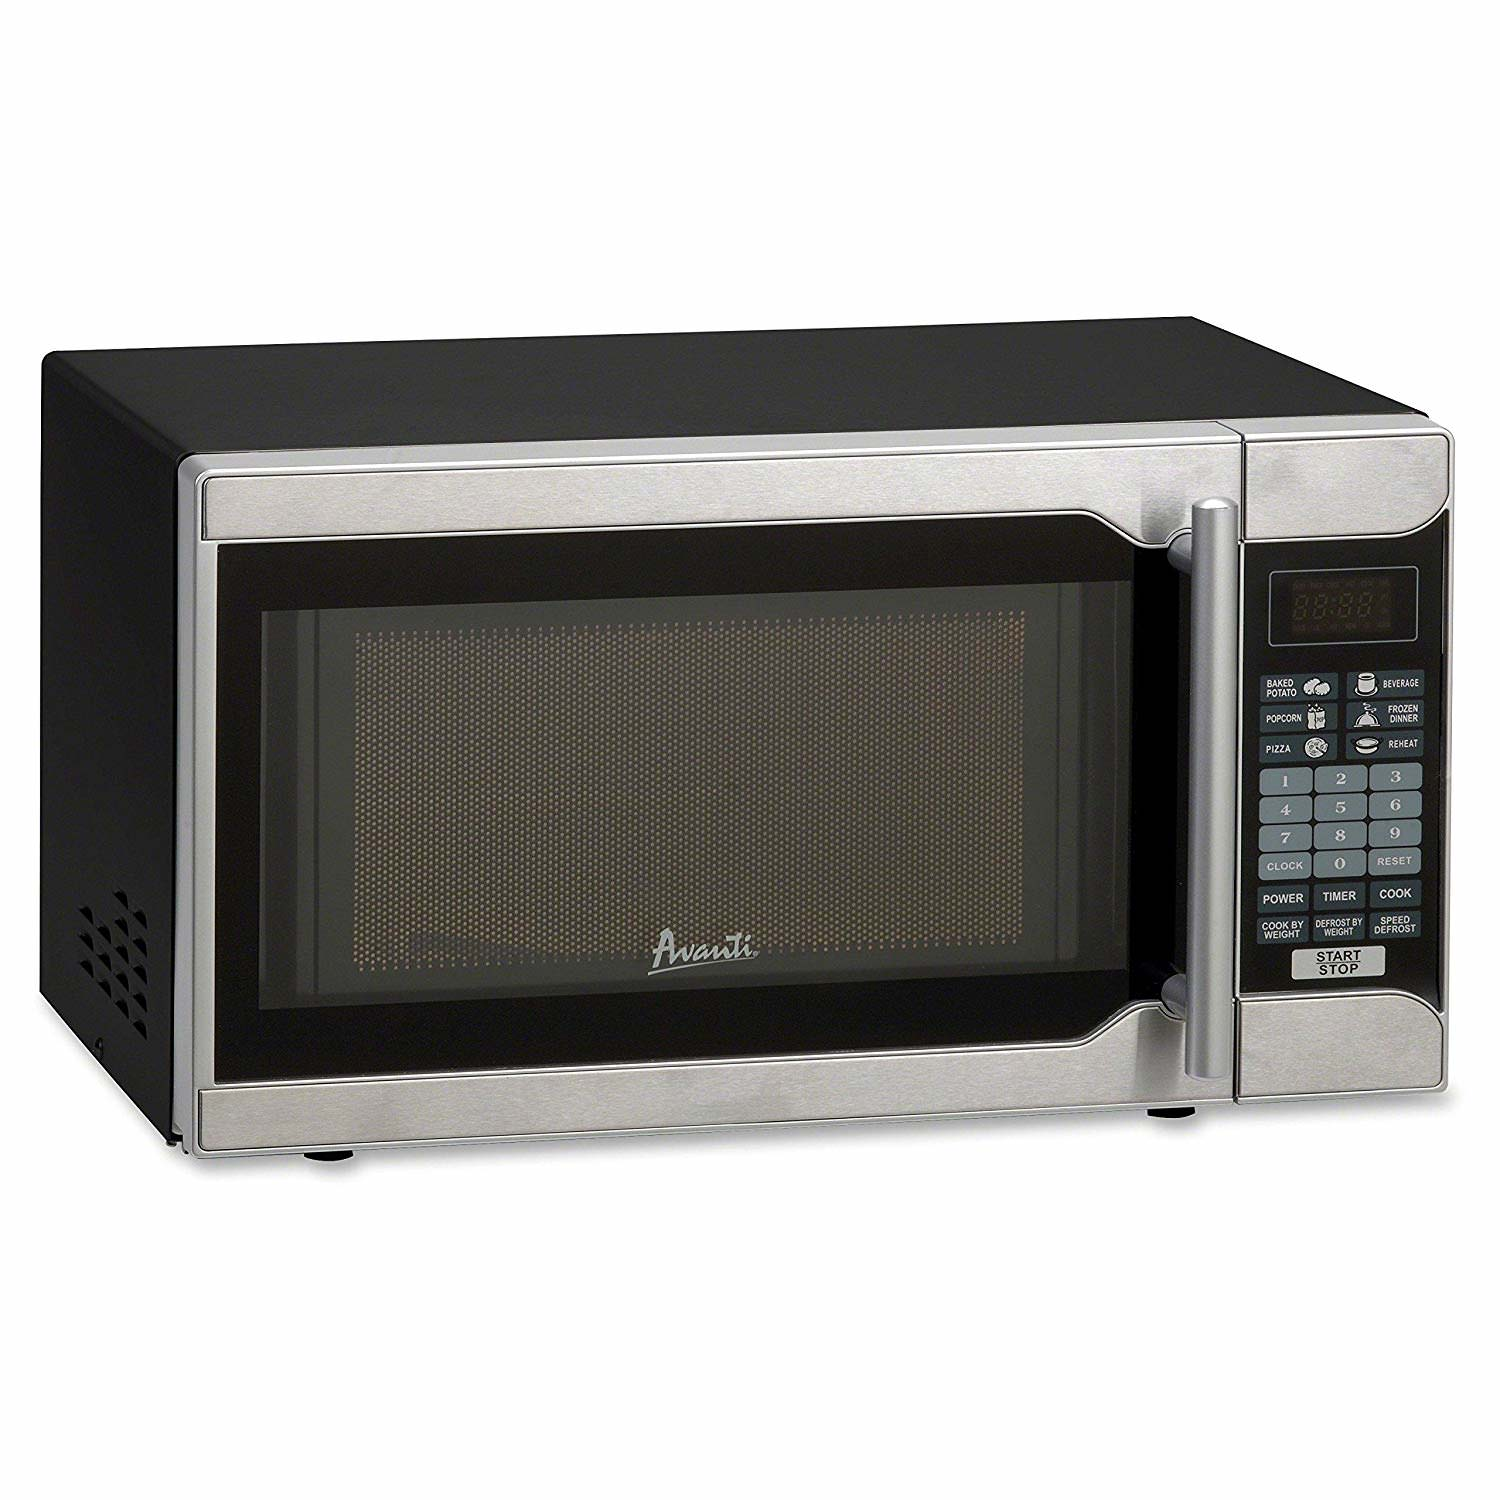 Avanti 0.7 CF Touch Microwave - Black, Stainless Steel